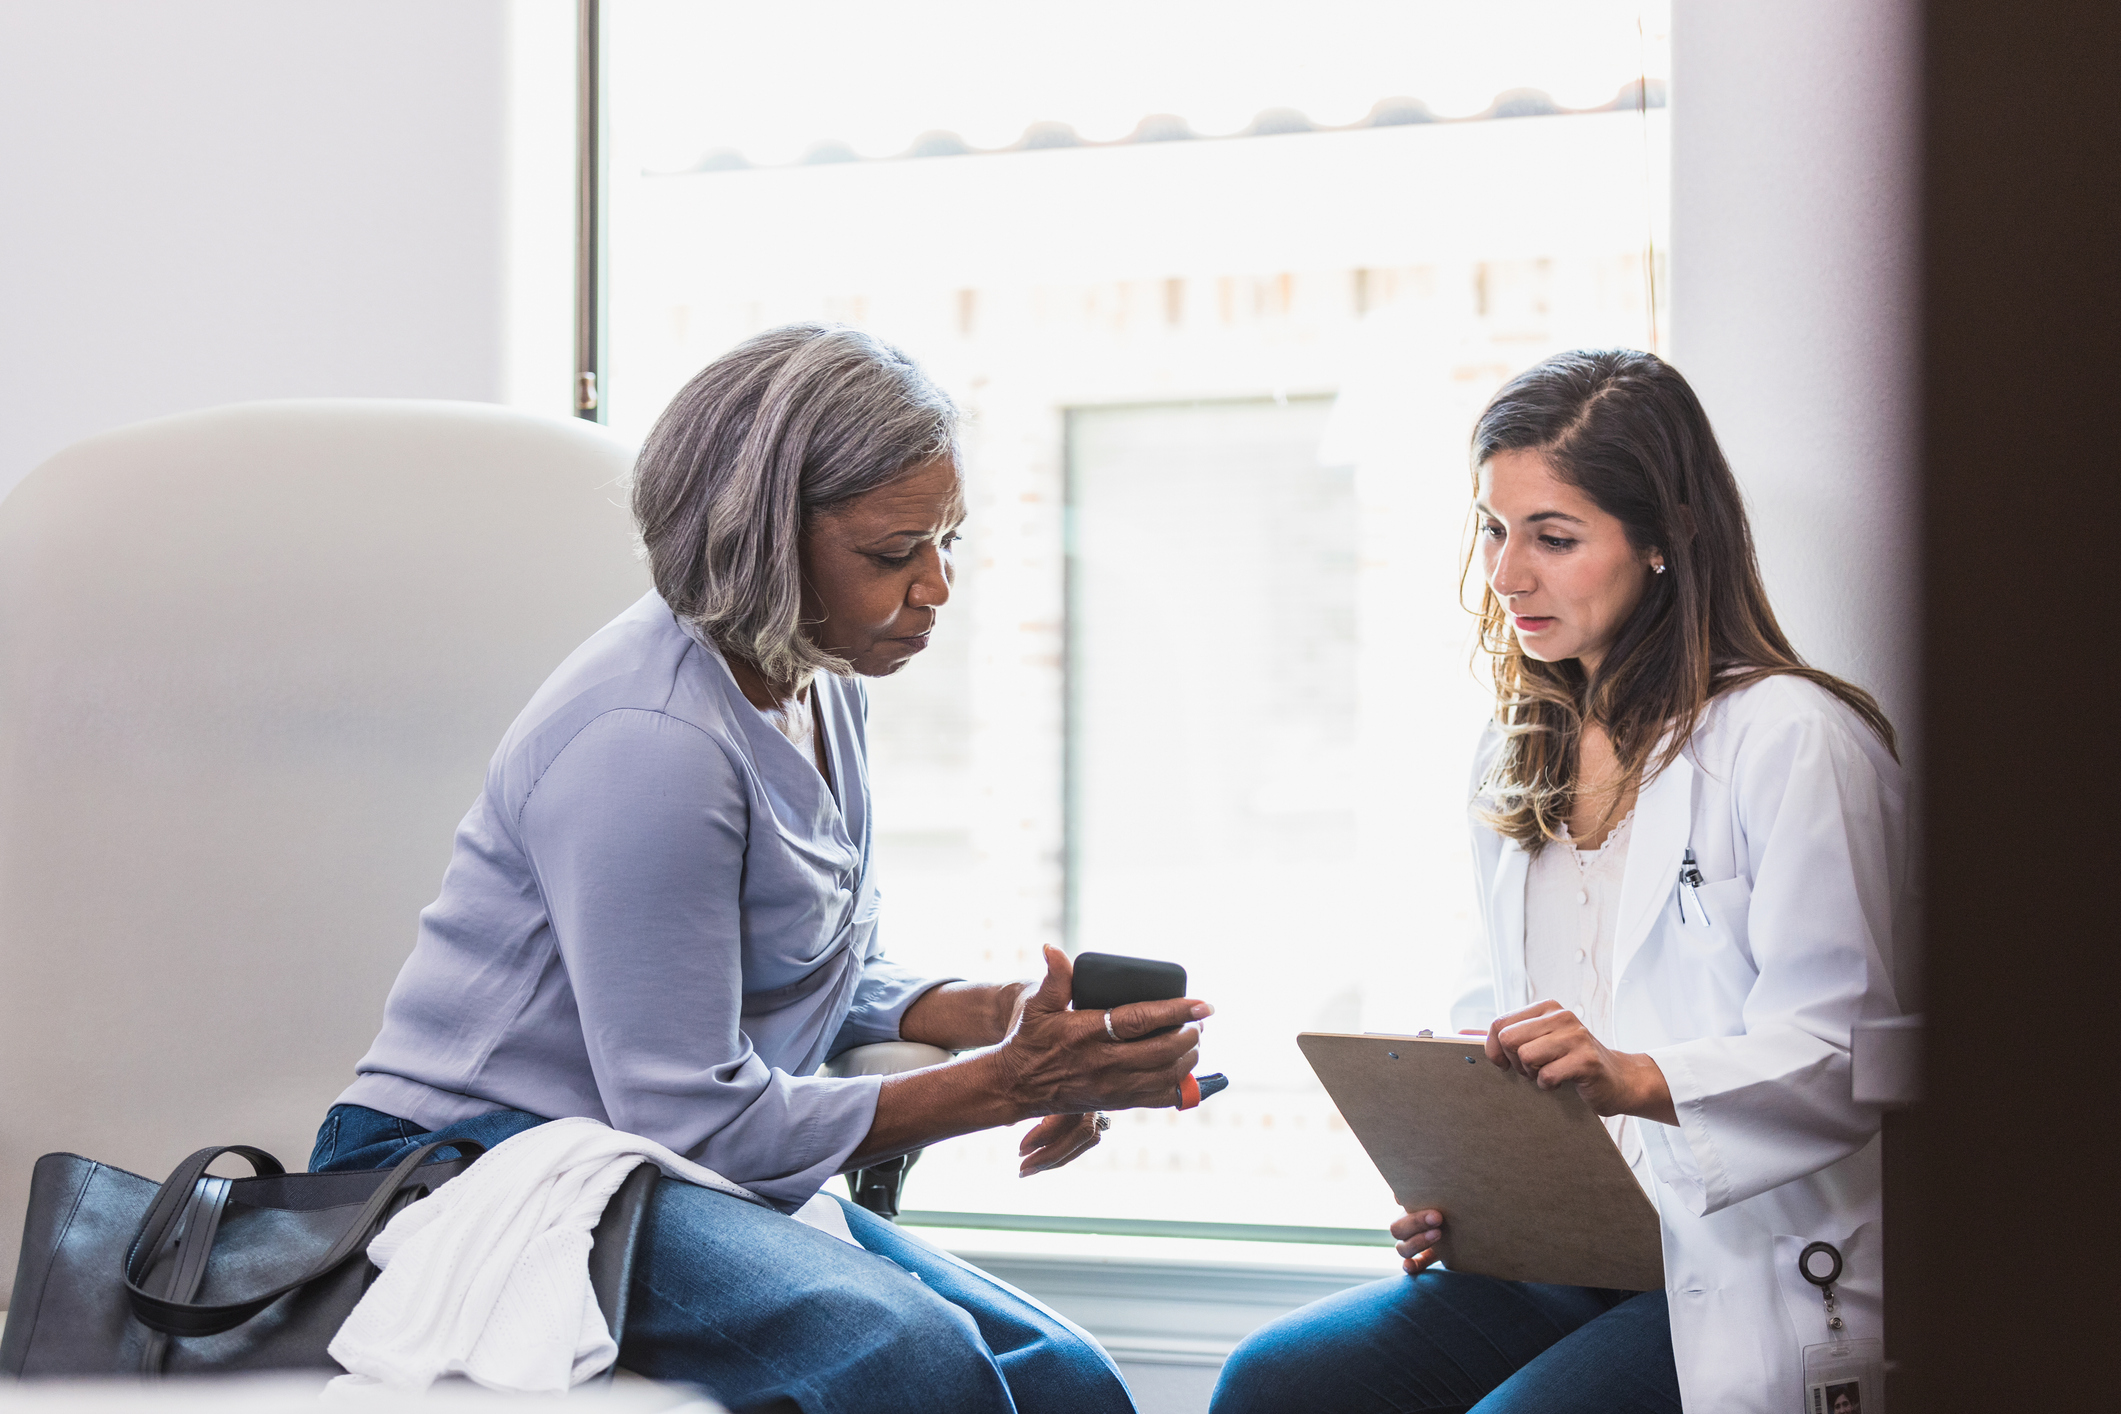 A senior woman shows a female doctor a health log she has been keeping on her smartphone